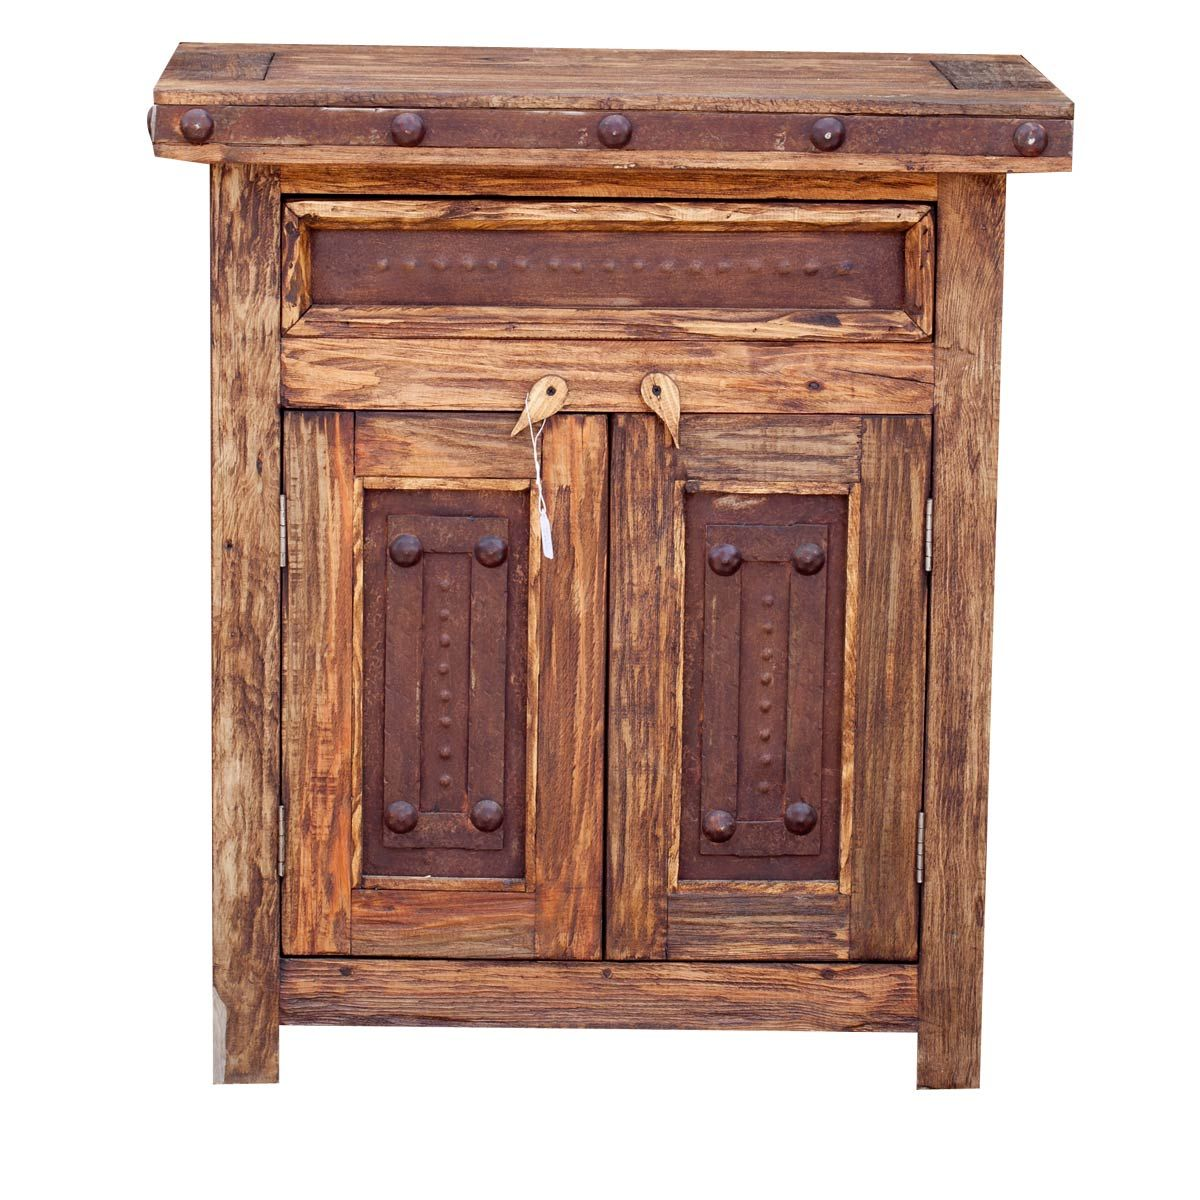 Cobre Mexican Vanity Reclaimed Wood Furniture Texas Rustic Furniture Mexican Furniture